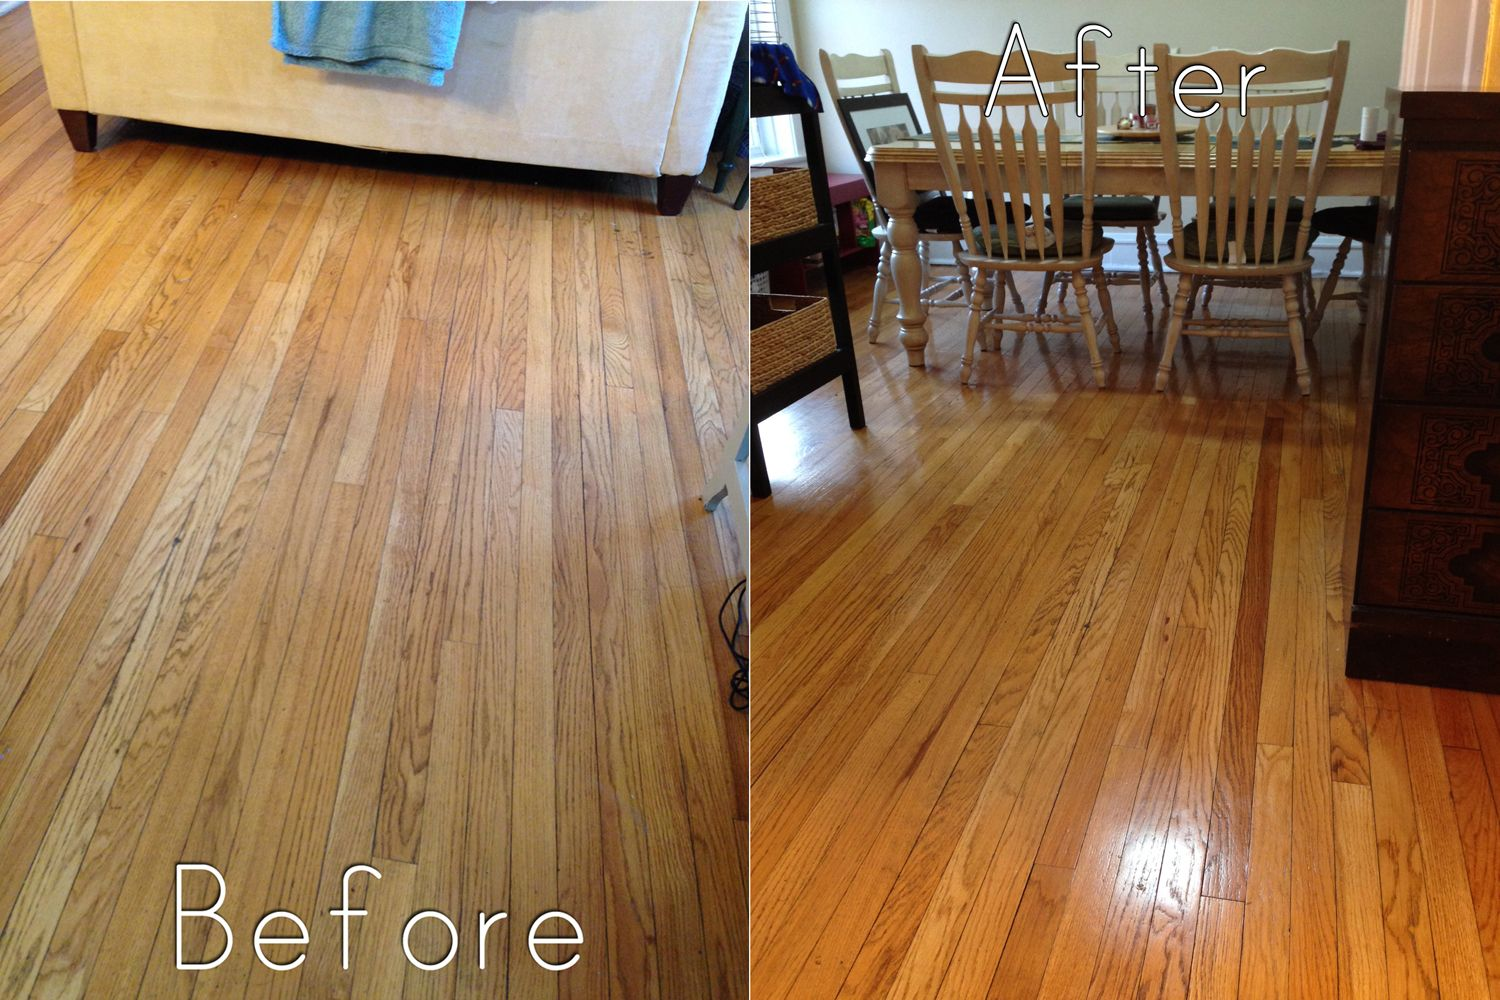 Natural Hardwood Floor Cleaner Recipe For Me Works Out To 300 Ml Hot Water Vinegar 25 Lemon Juice And Oil